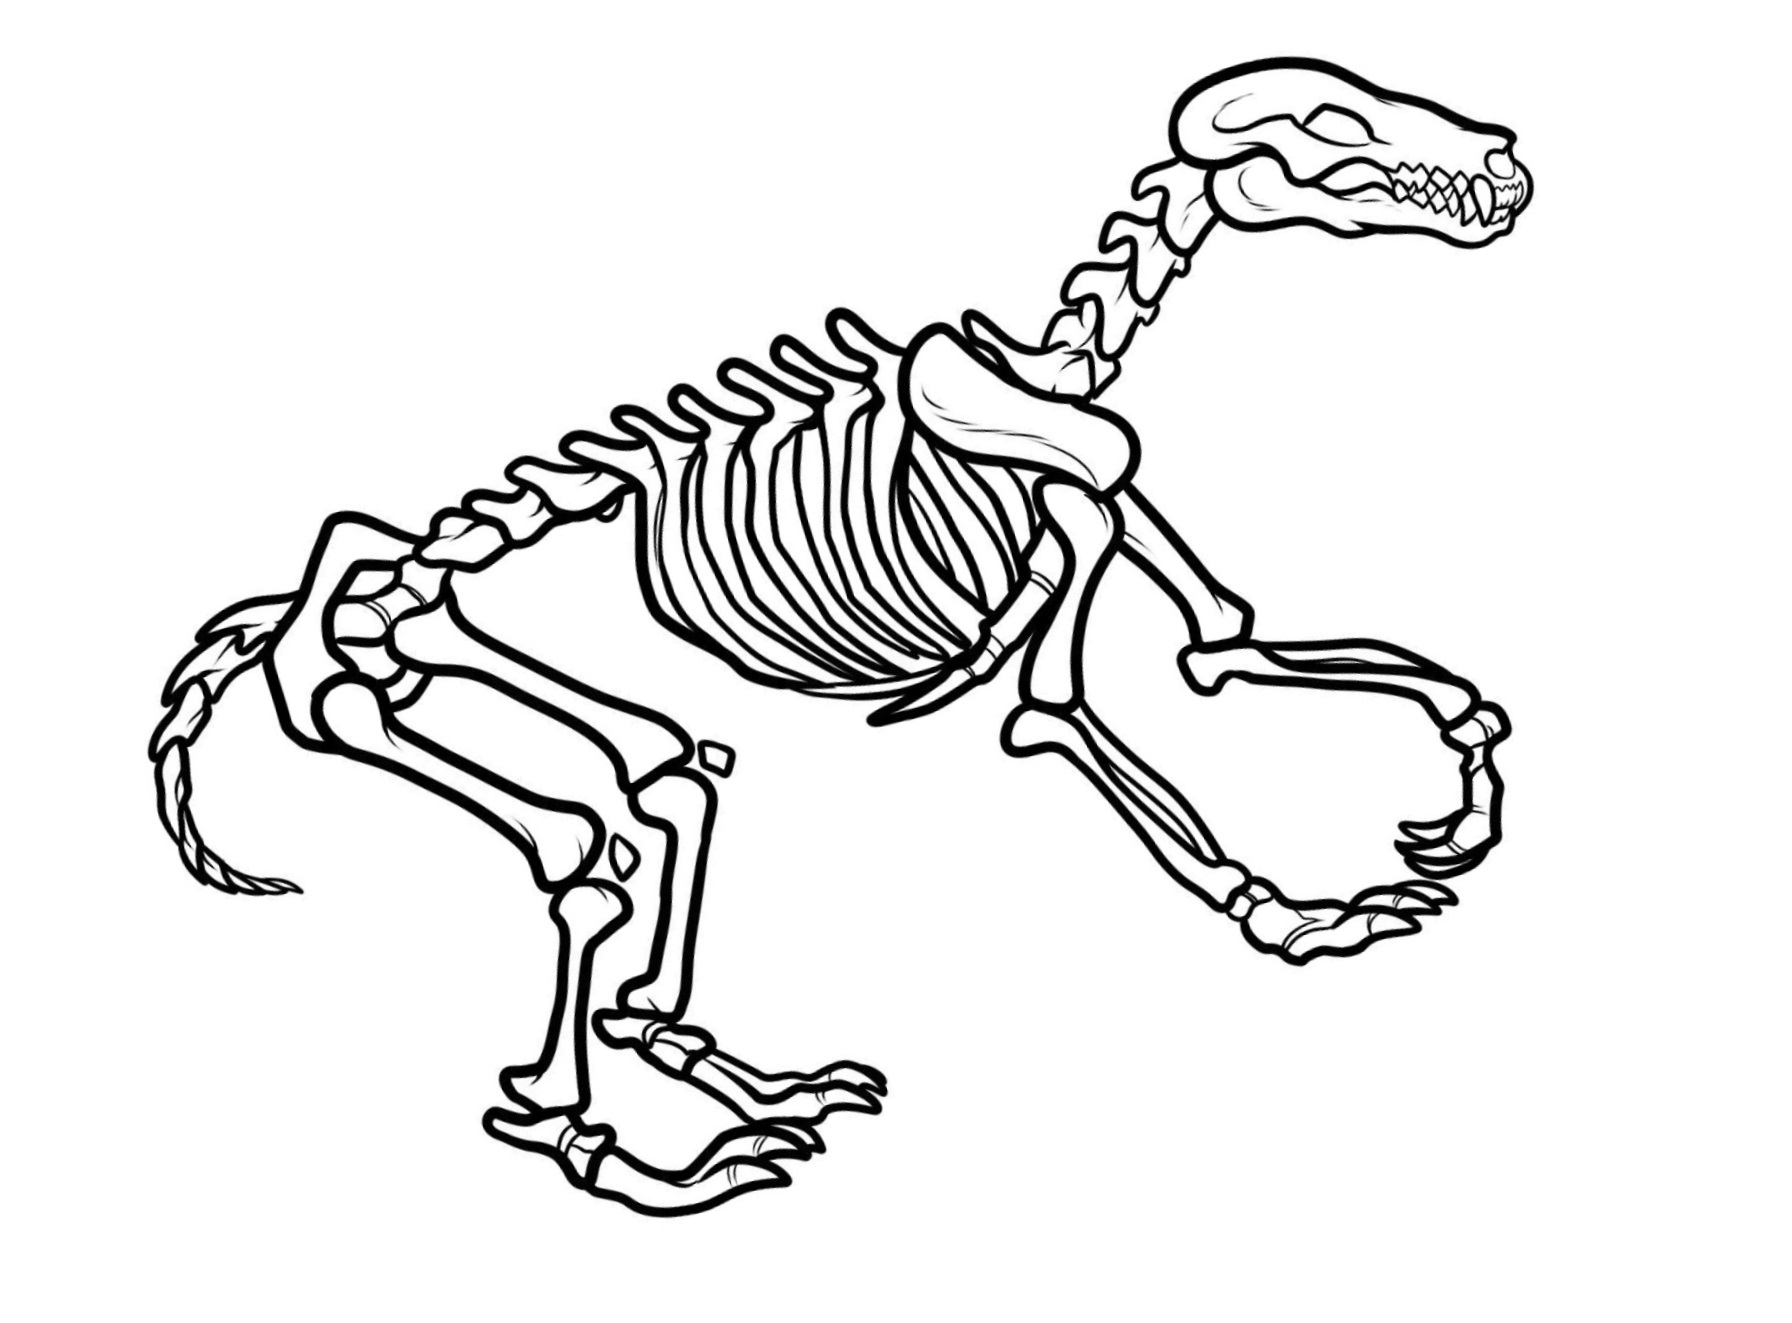 1792x1323 Fossil Drawing Dinosaur Footprint For Free Download